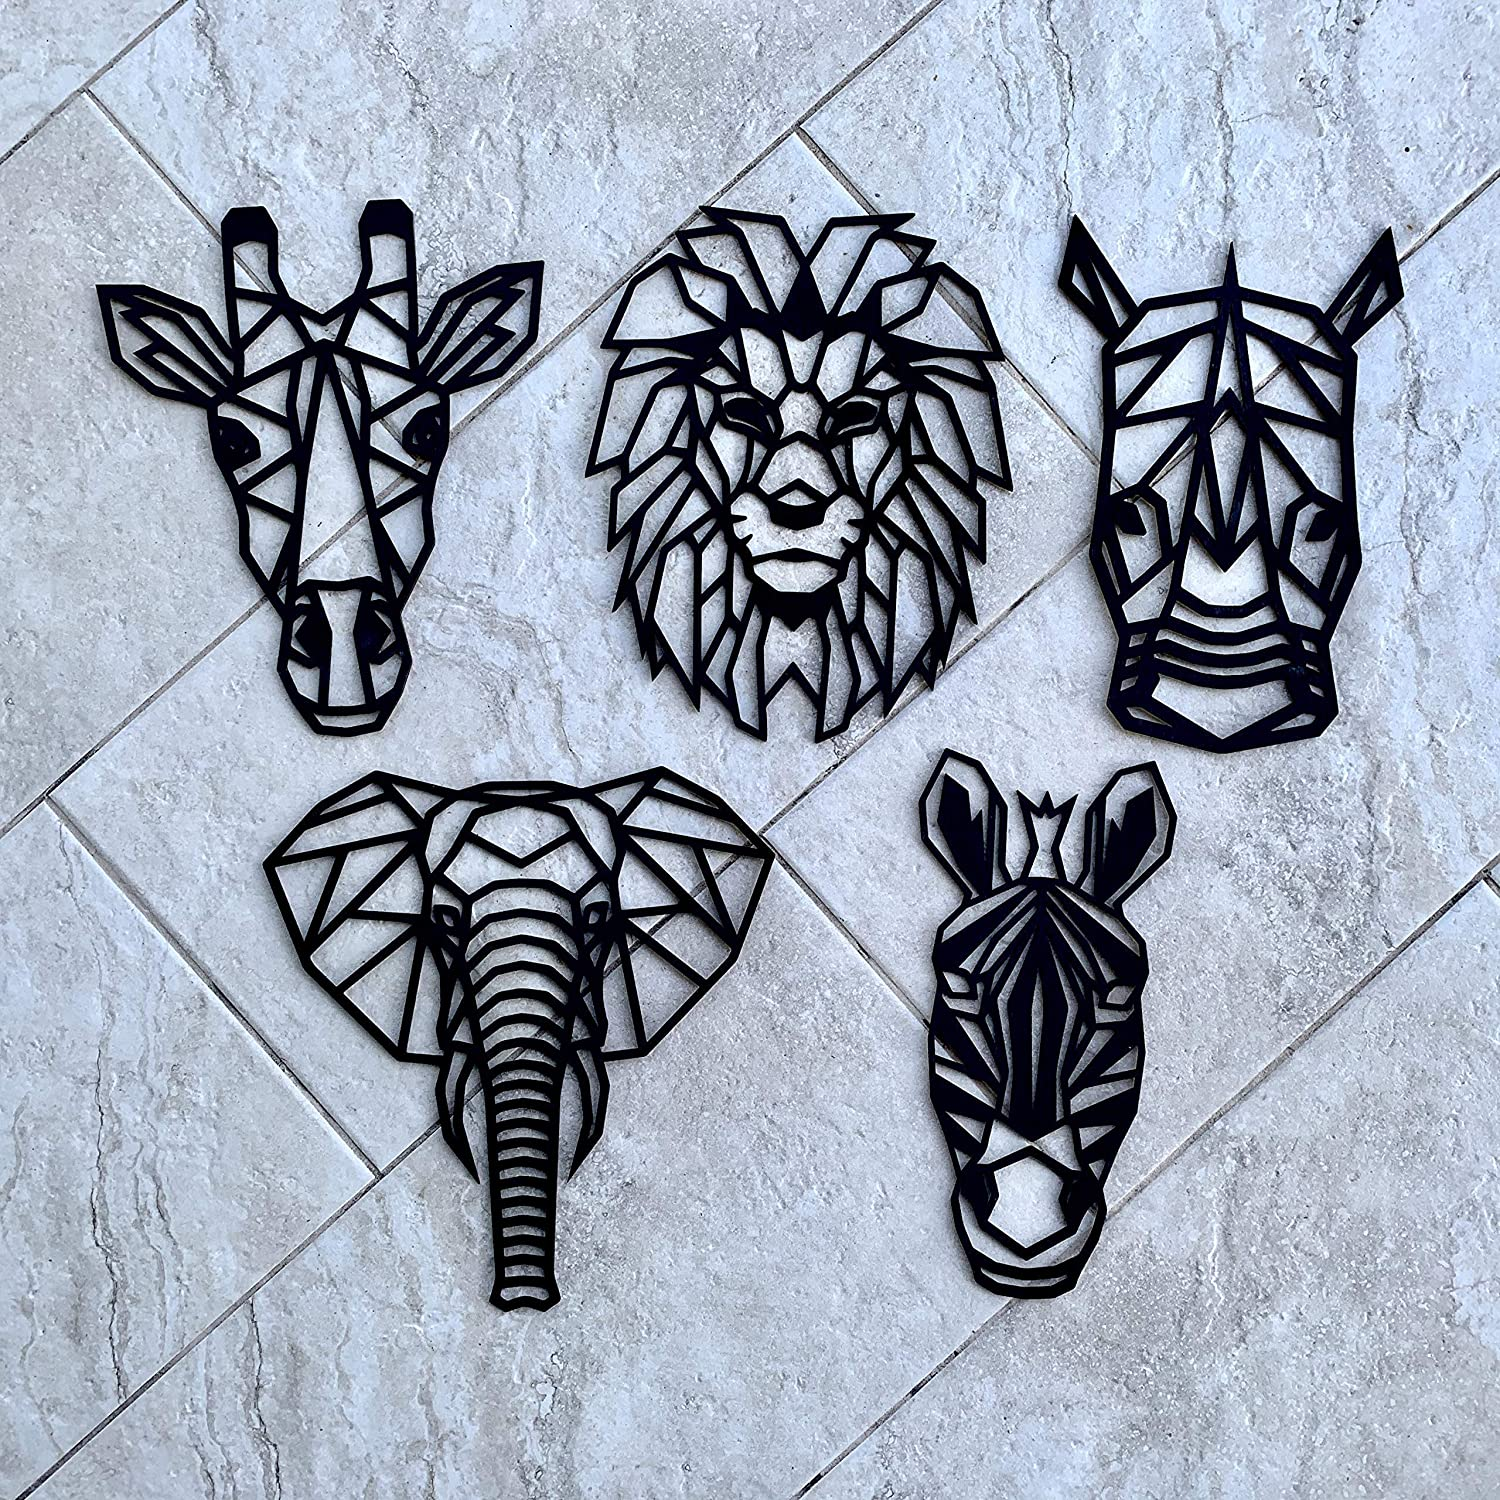 Pack of 5 Nursery Minimalist Wall Art Decor Wooden SAFARI Animal Geometric Wall Art Pack Decoration for Bedrooms Living Rooms